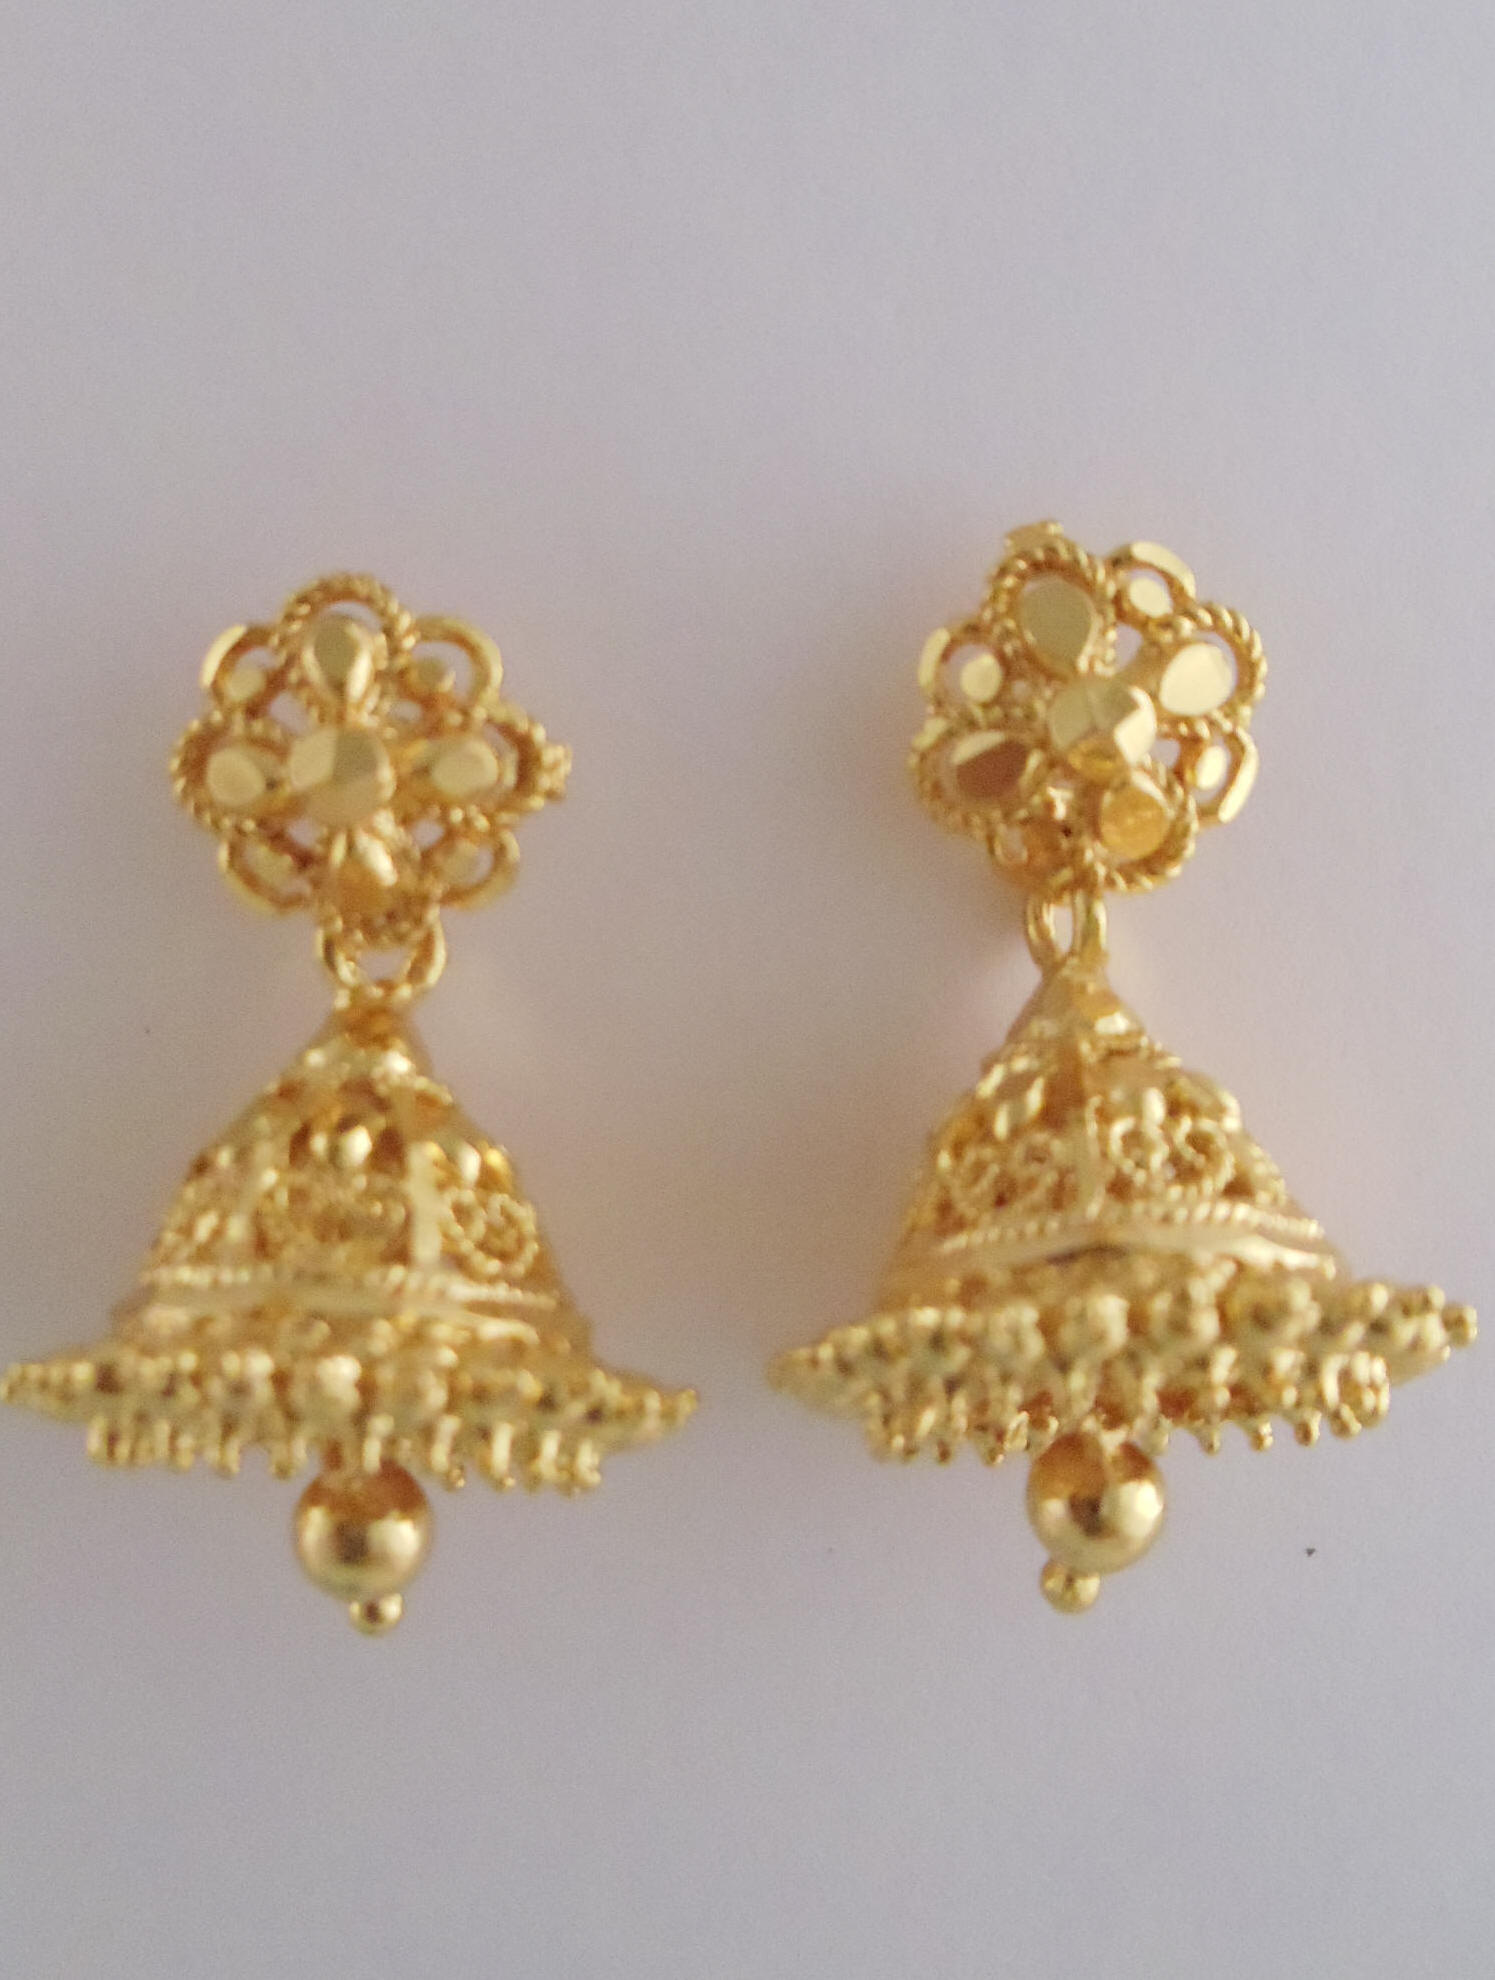 Gram Gold Jewelry Home Page